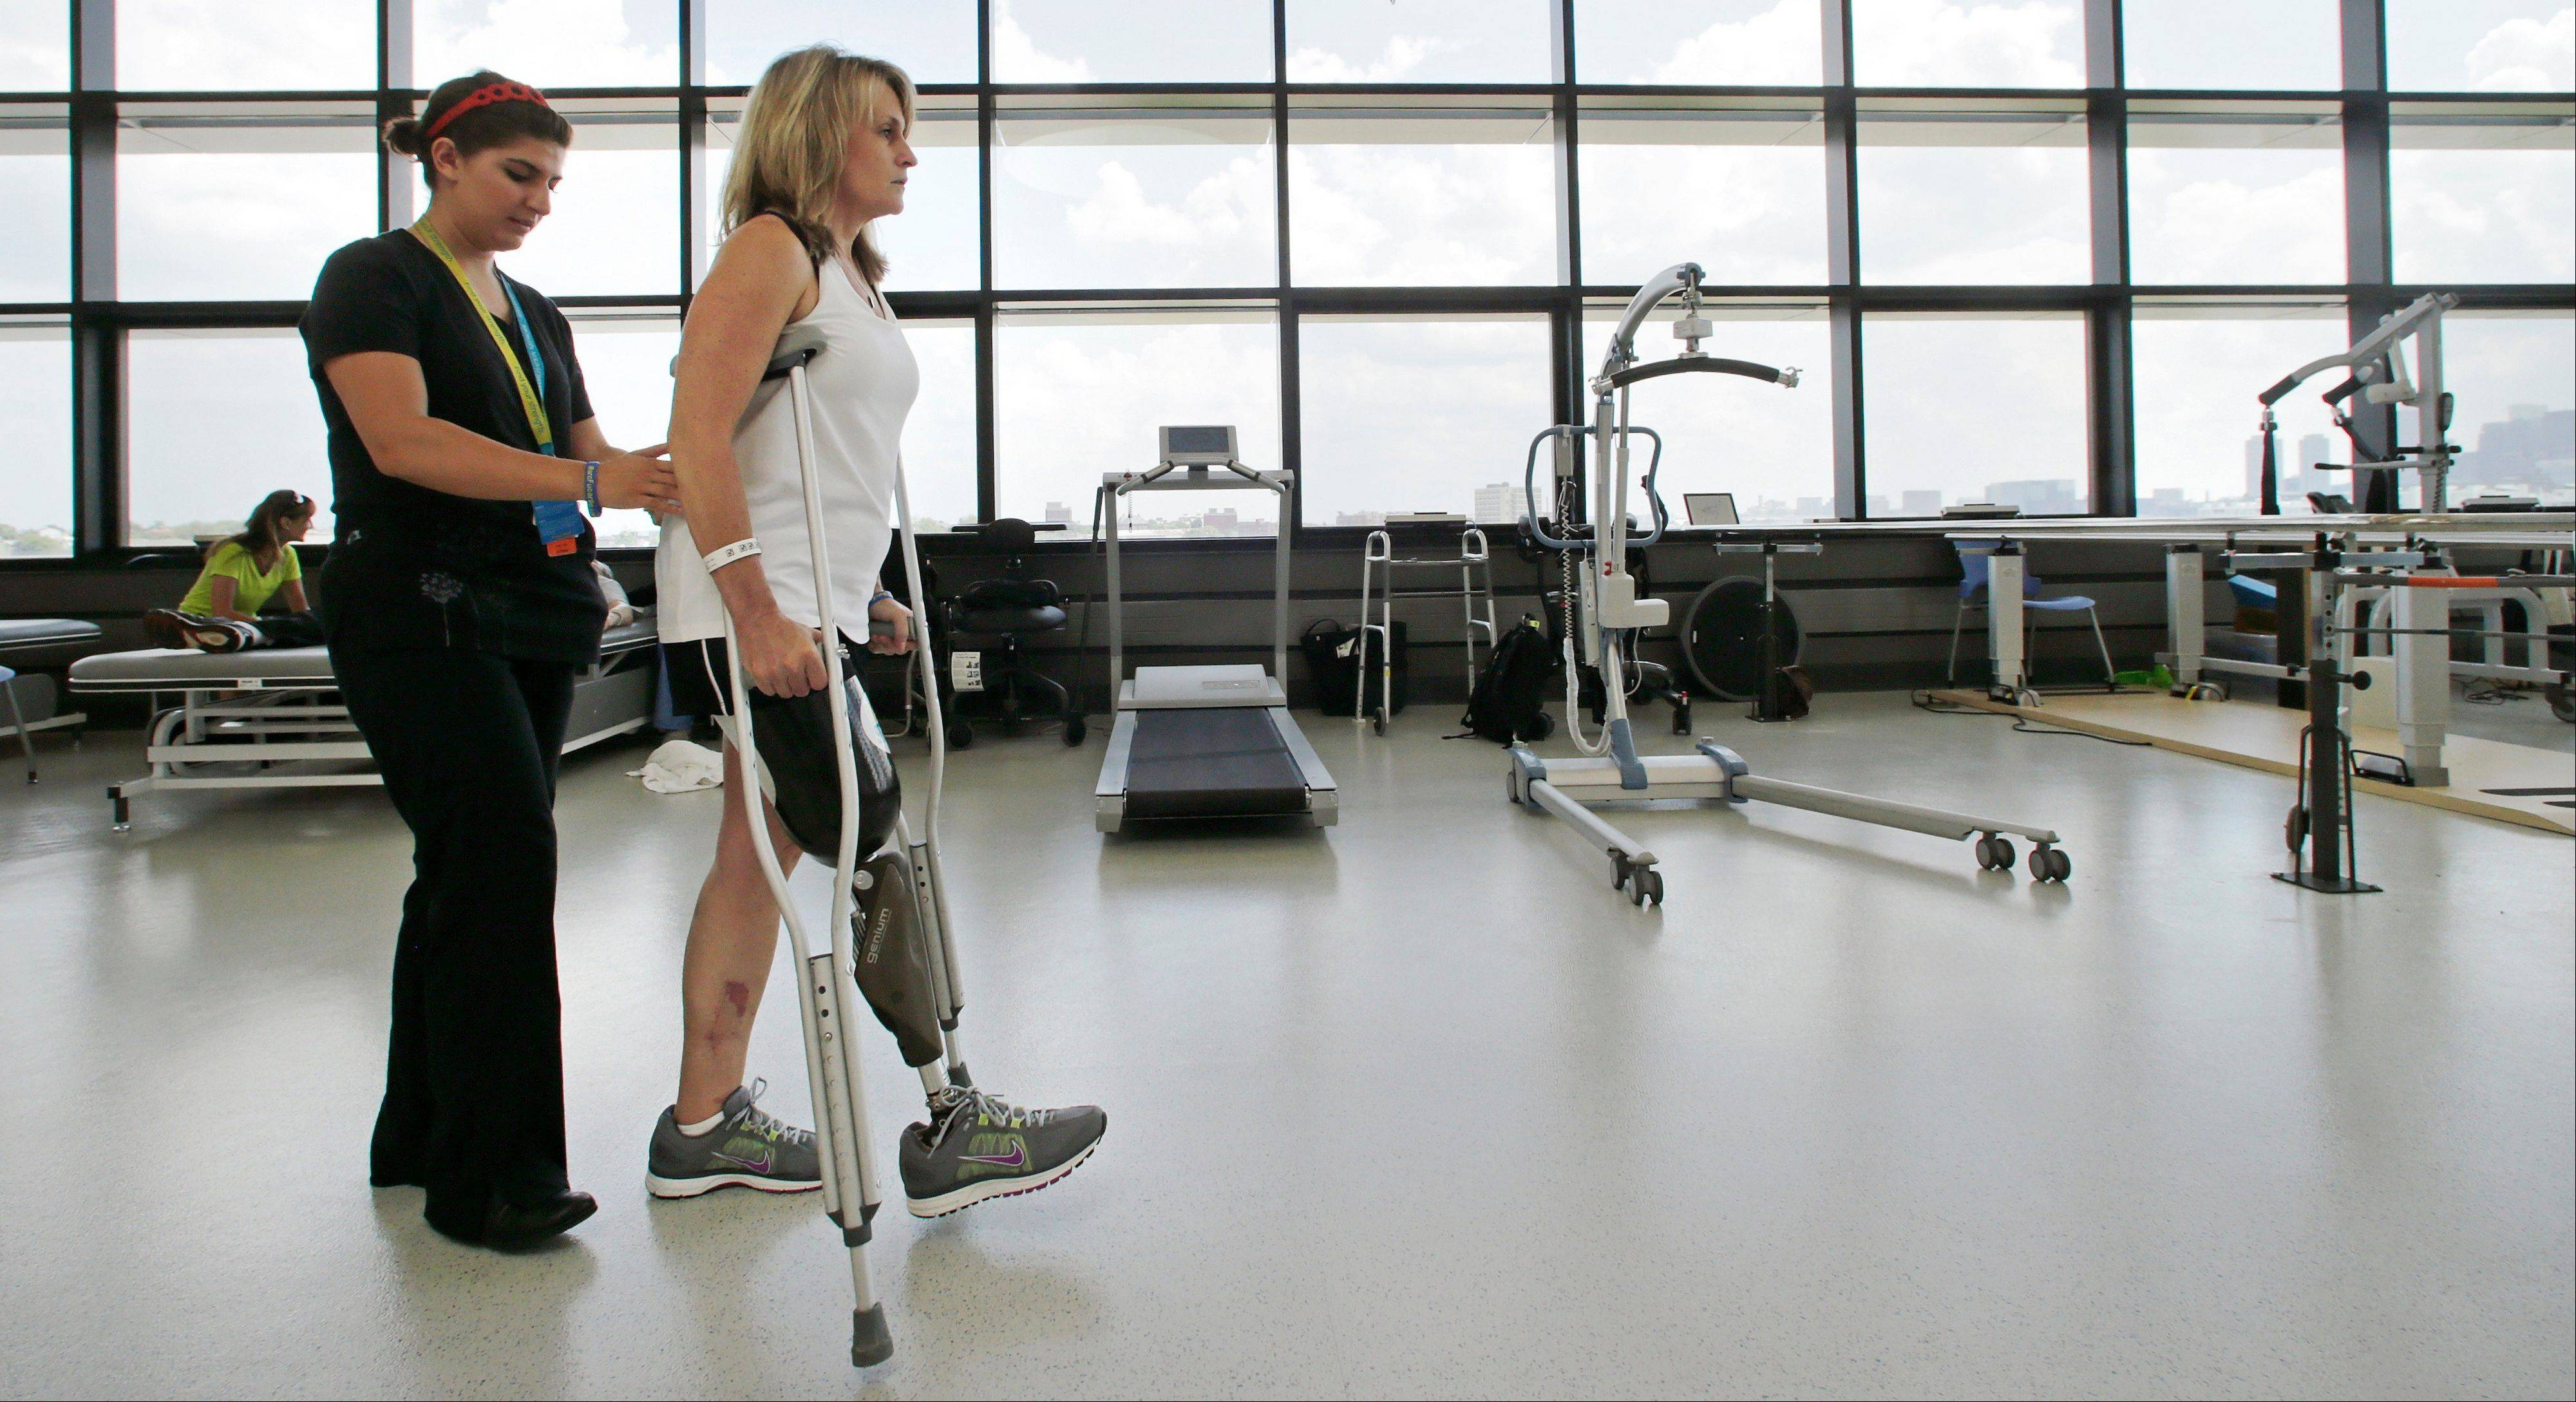 With physical therapist Dara Casparian, left, guiding her strides, Boston Marathon bombing survivor Roseann Sdoia, of Boston, looks forward toward a mirror at the Spaulding Rehabilitation Hospital.